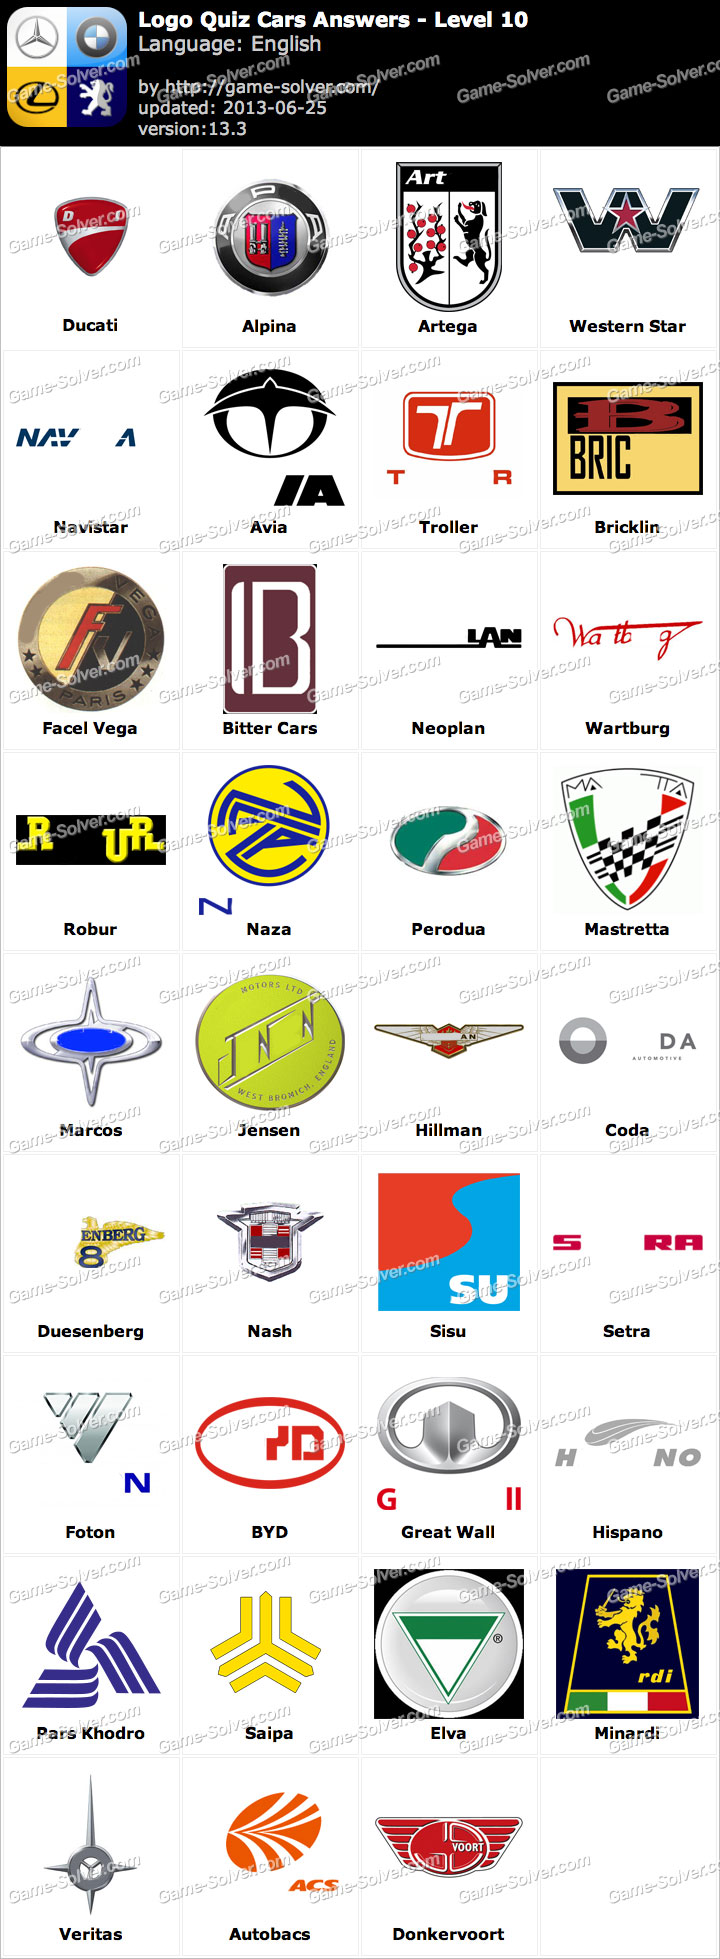 Logo Quiz Cars Answers Level 10 - Game Solver Cars Logos Quiz Answers